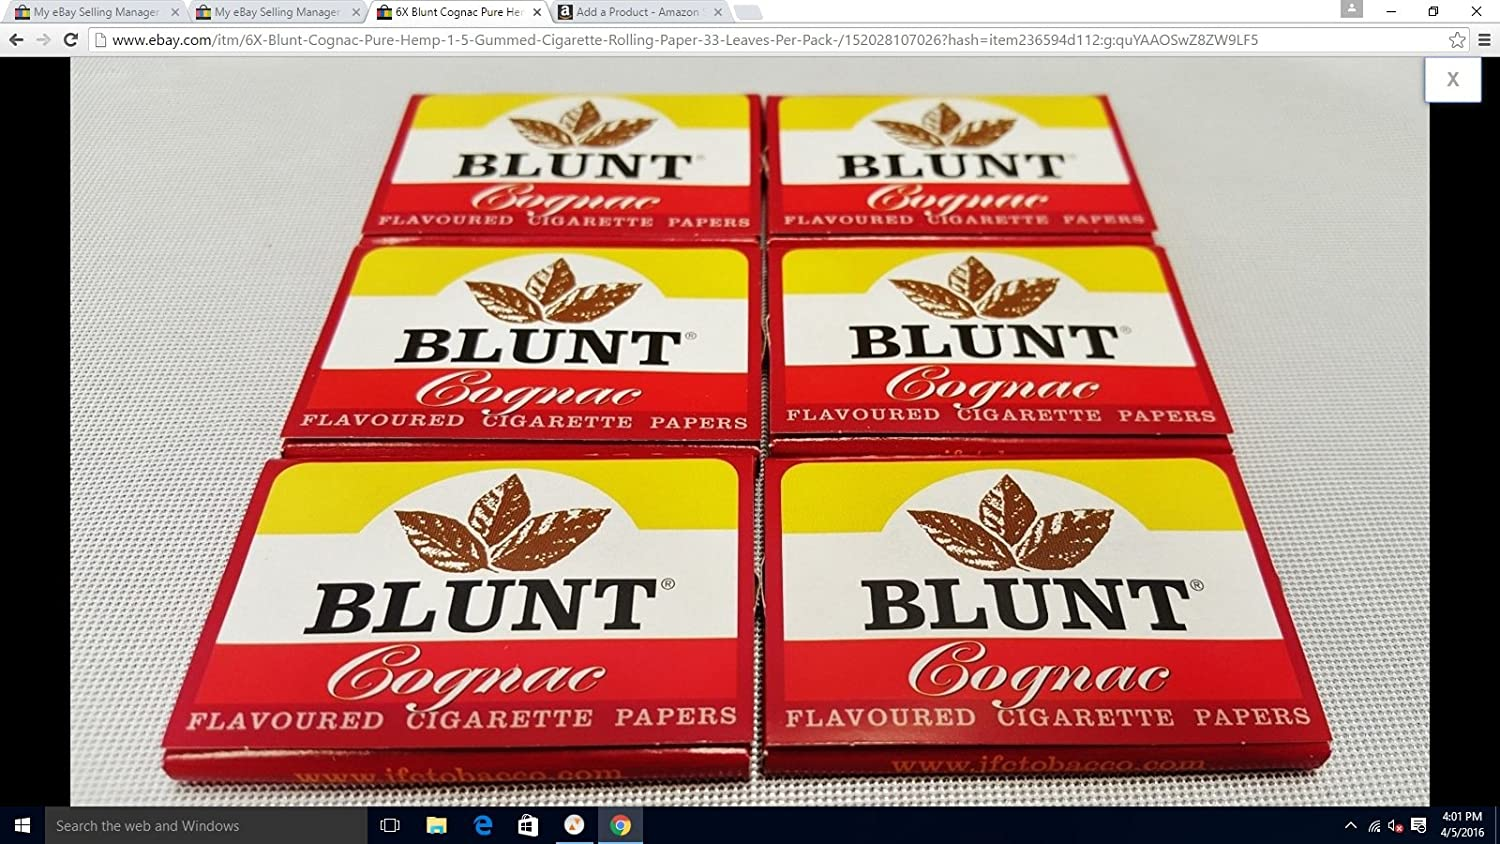 Amazon.com: 6X Blunt Cognac Pure Hemp 1.5 Gummed Cigarette Rolling Paper 33 Leaves Per Pack: Health & Personal Care